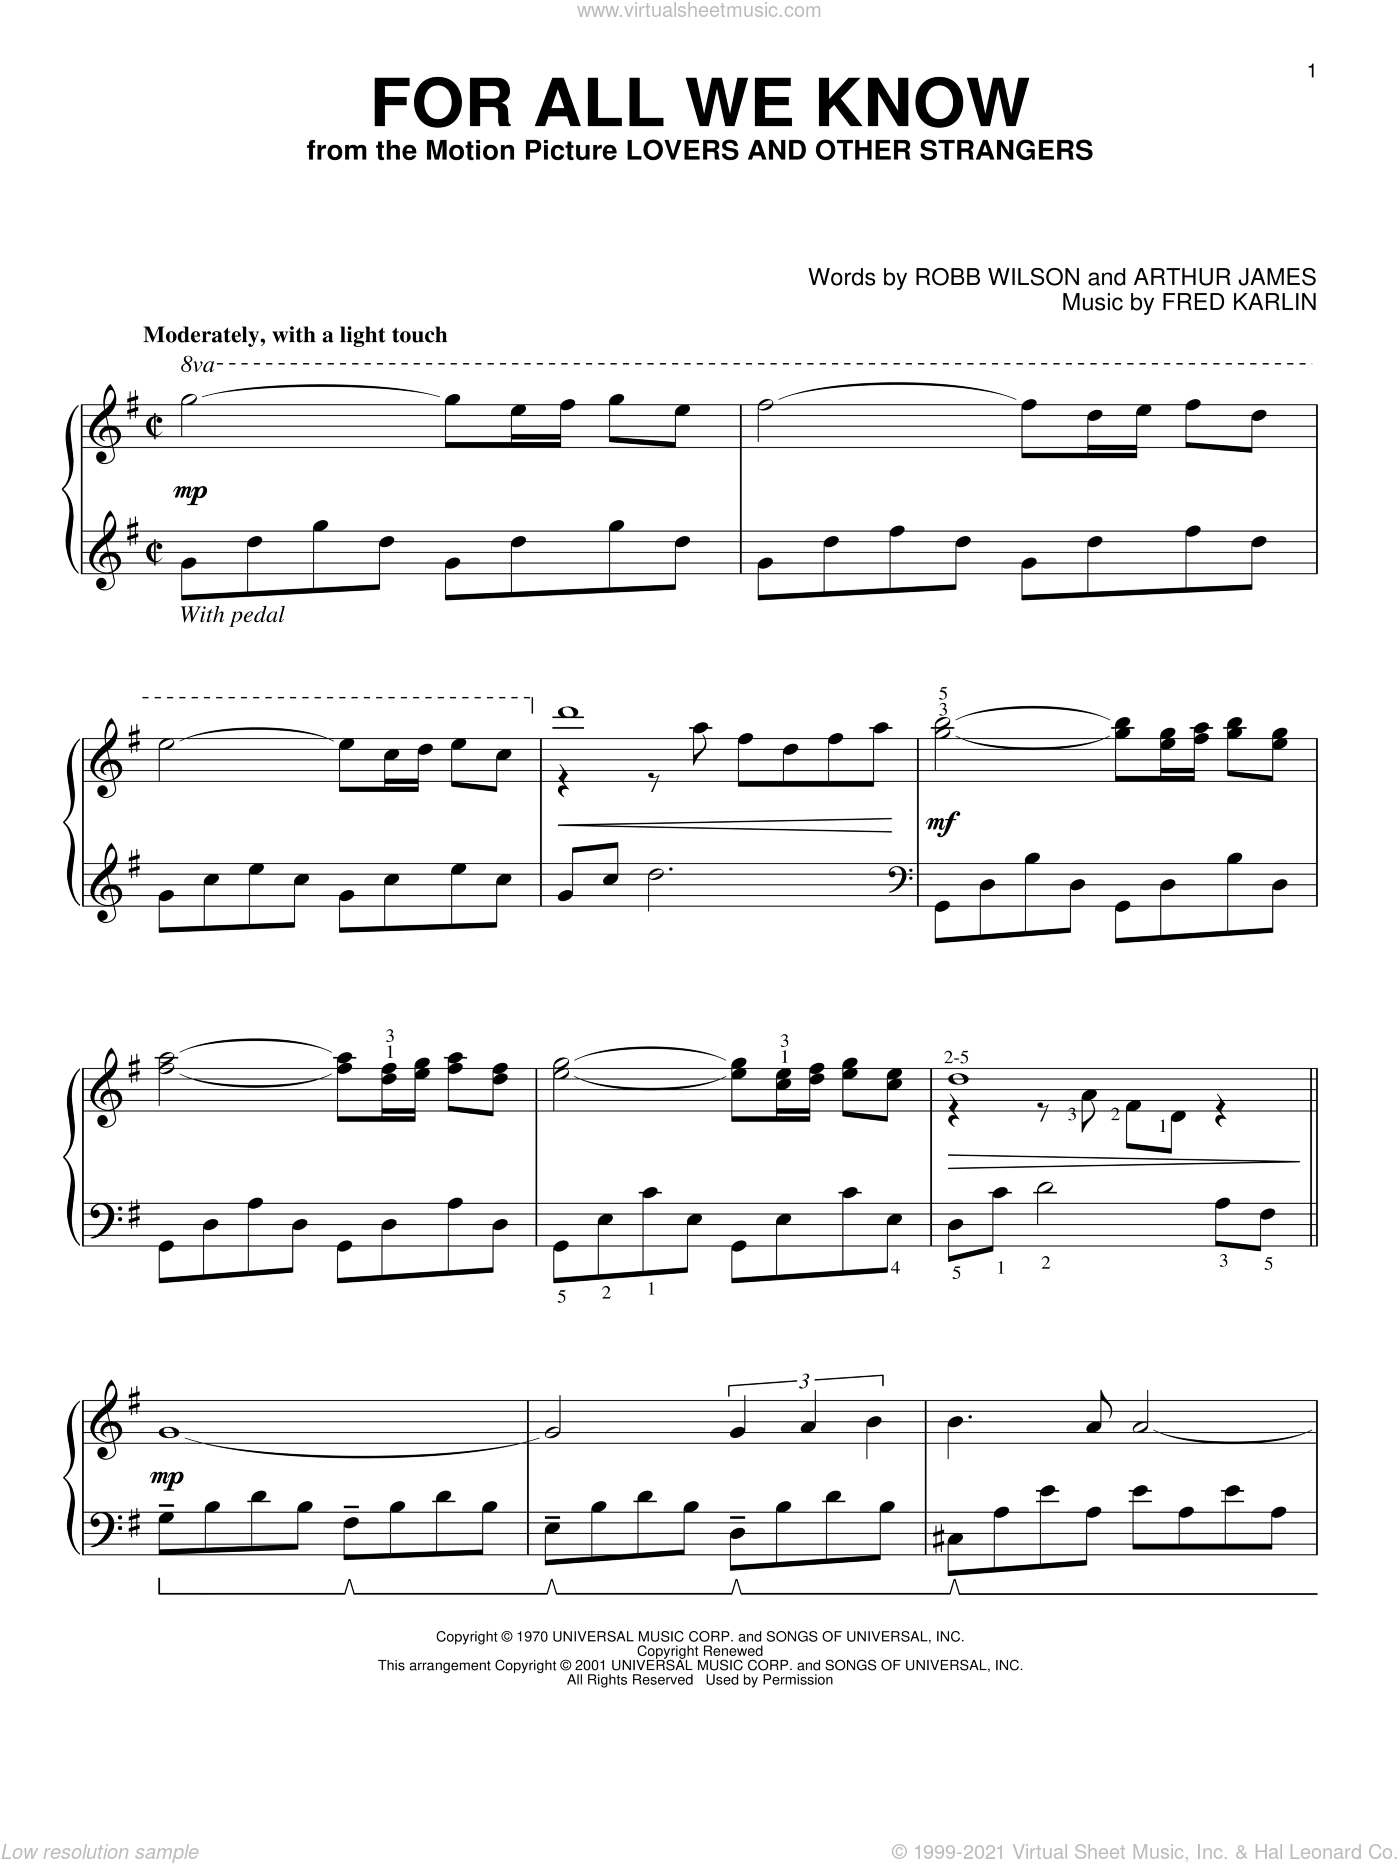 For All We Know sheet music for piano solo by Carpenters, Fred Karlin, James Griffin and Robb Wilson, wedding score, intermediate skill level